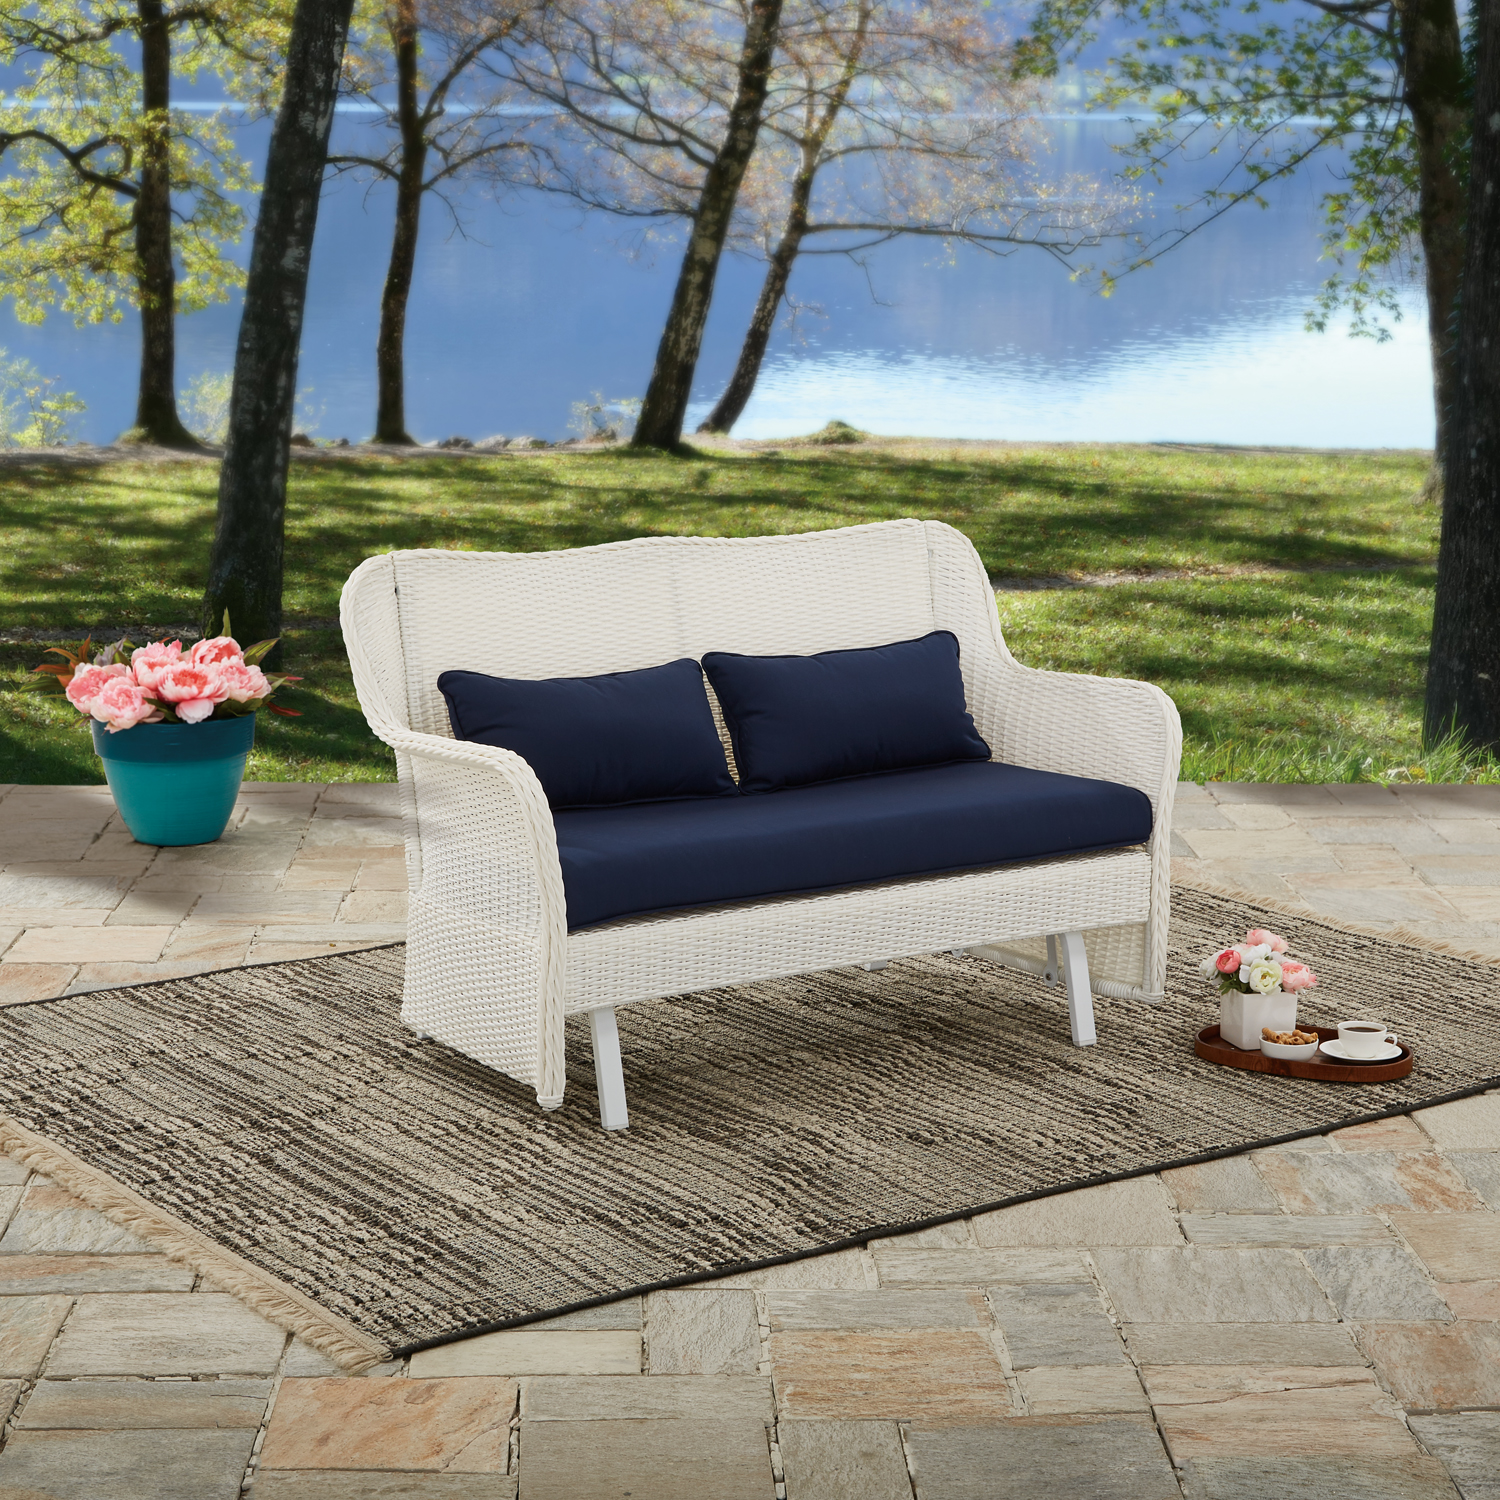 Better Homes and Gardens Camrose Farmhouse Outdoor Wicker Glider Bench by YOTRIO CORPORATION